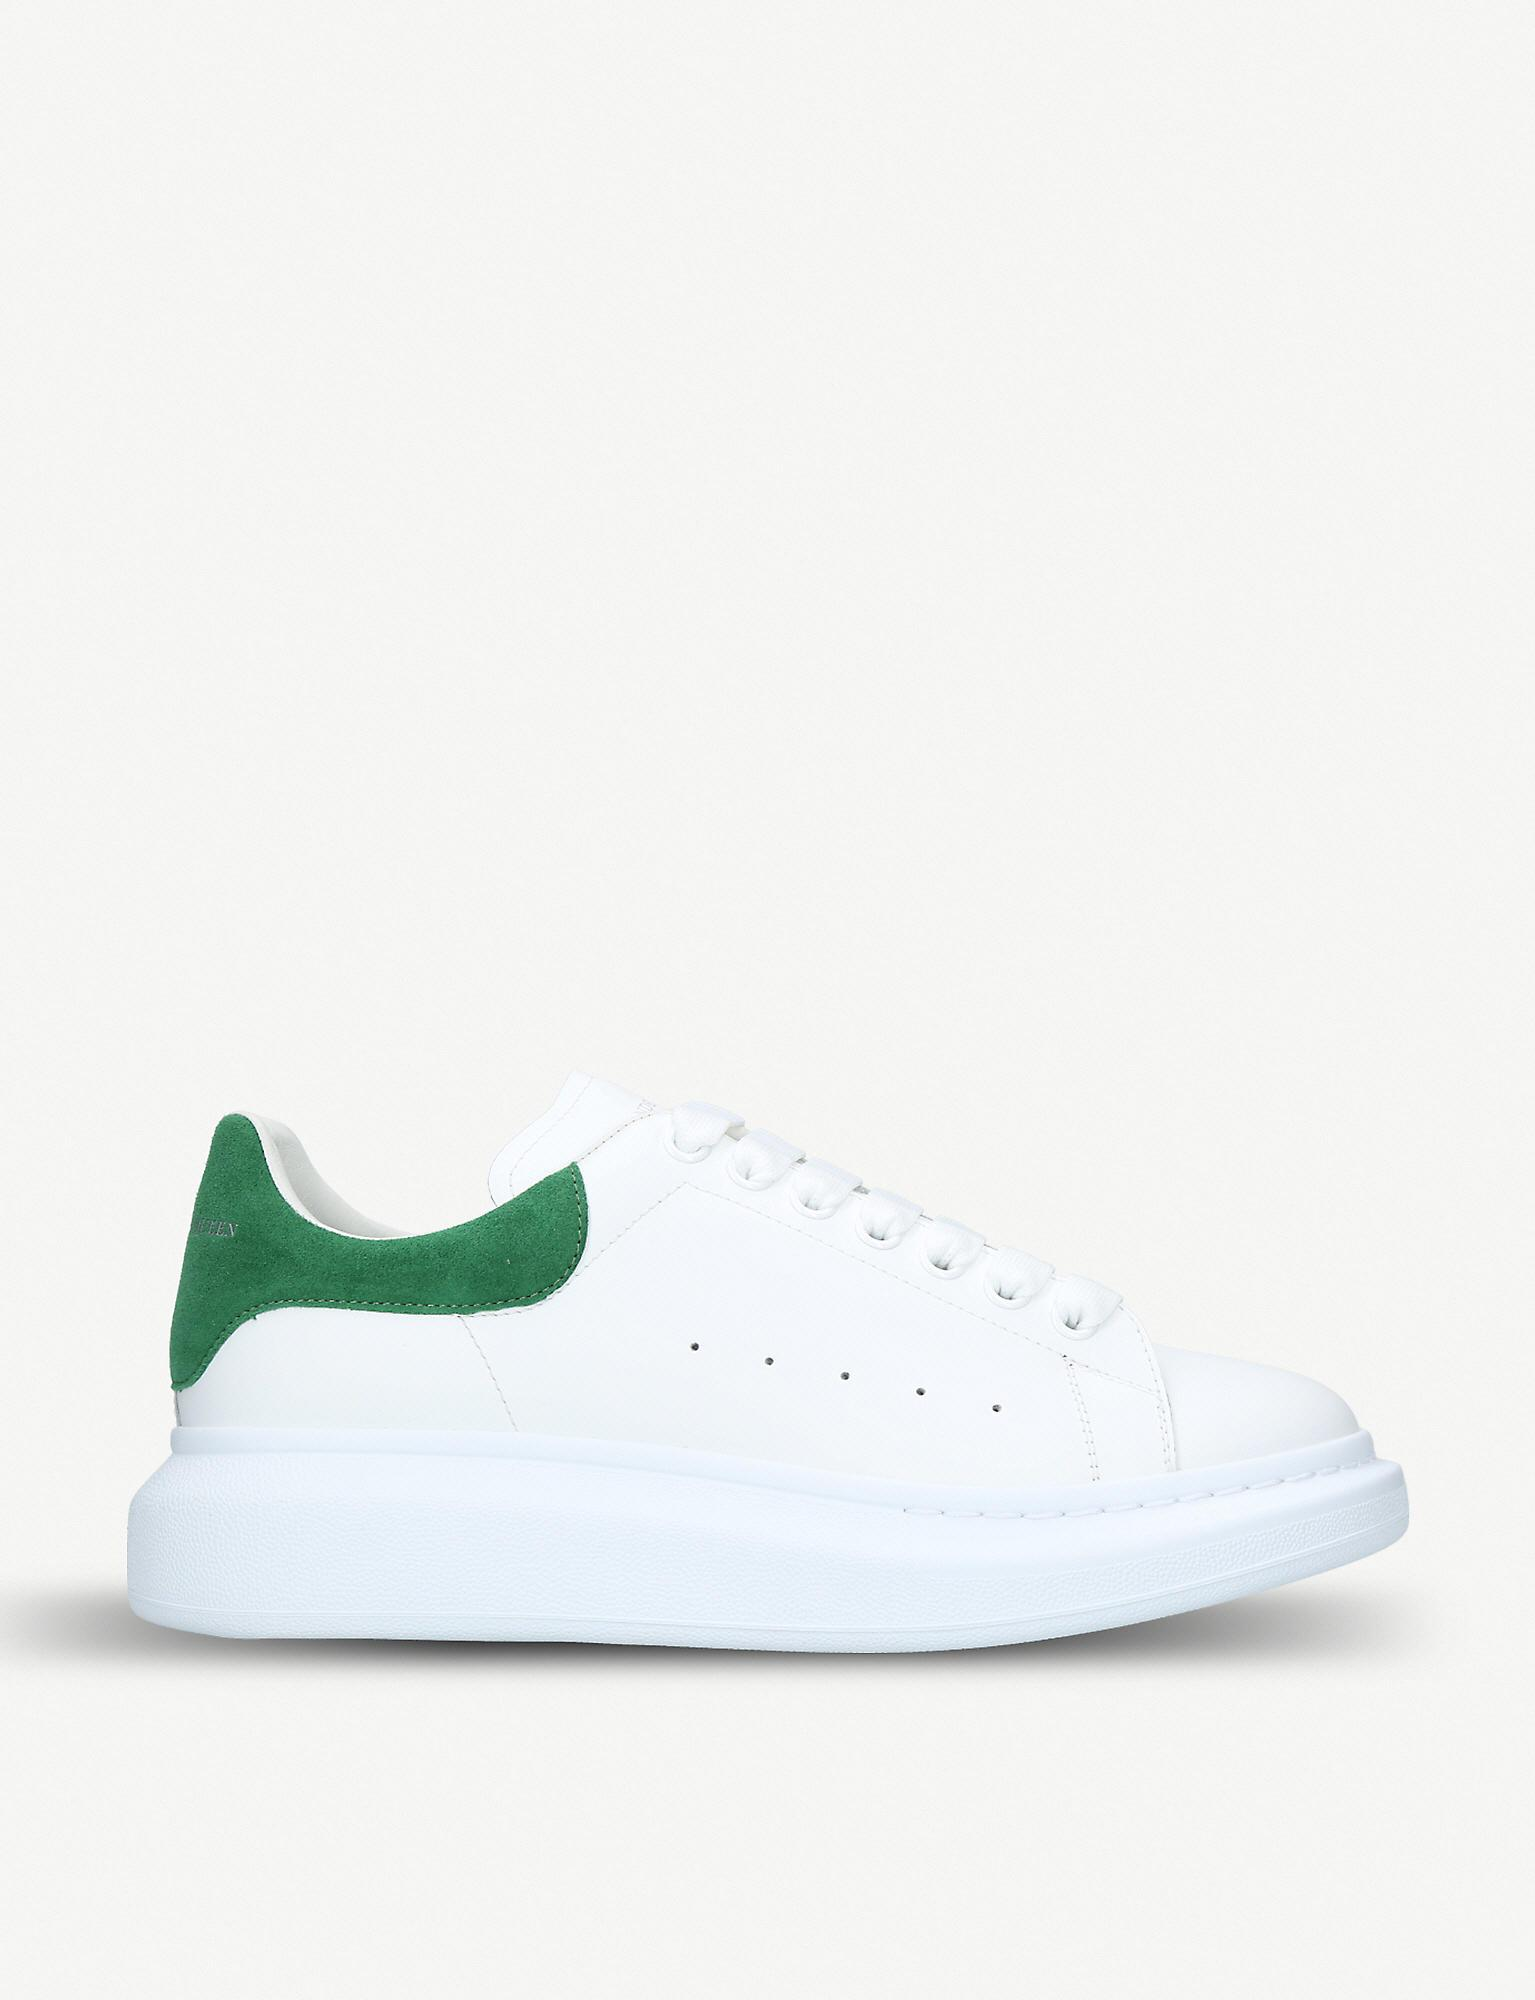 Alexander McQueen Leather Show Sneakers in White for Men